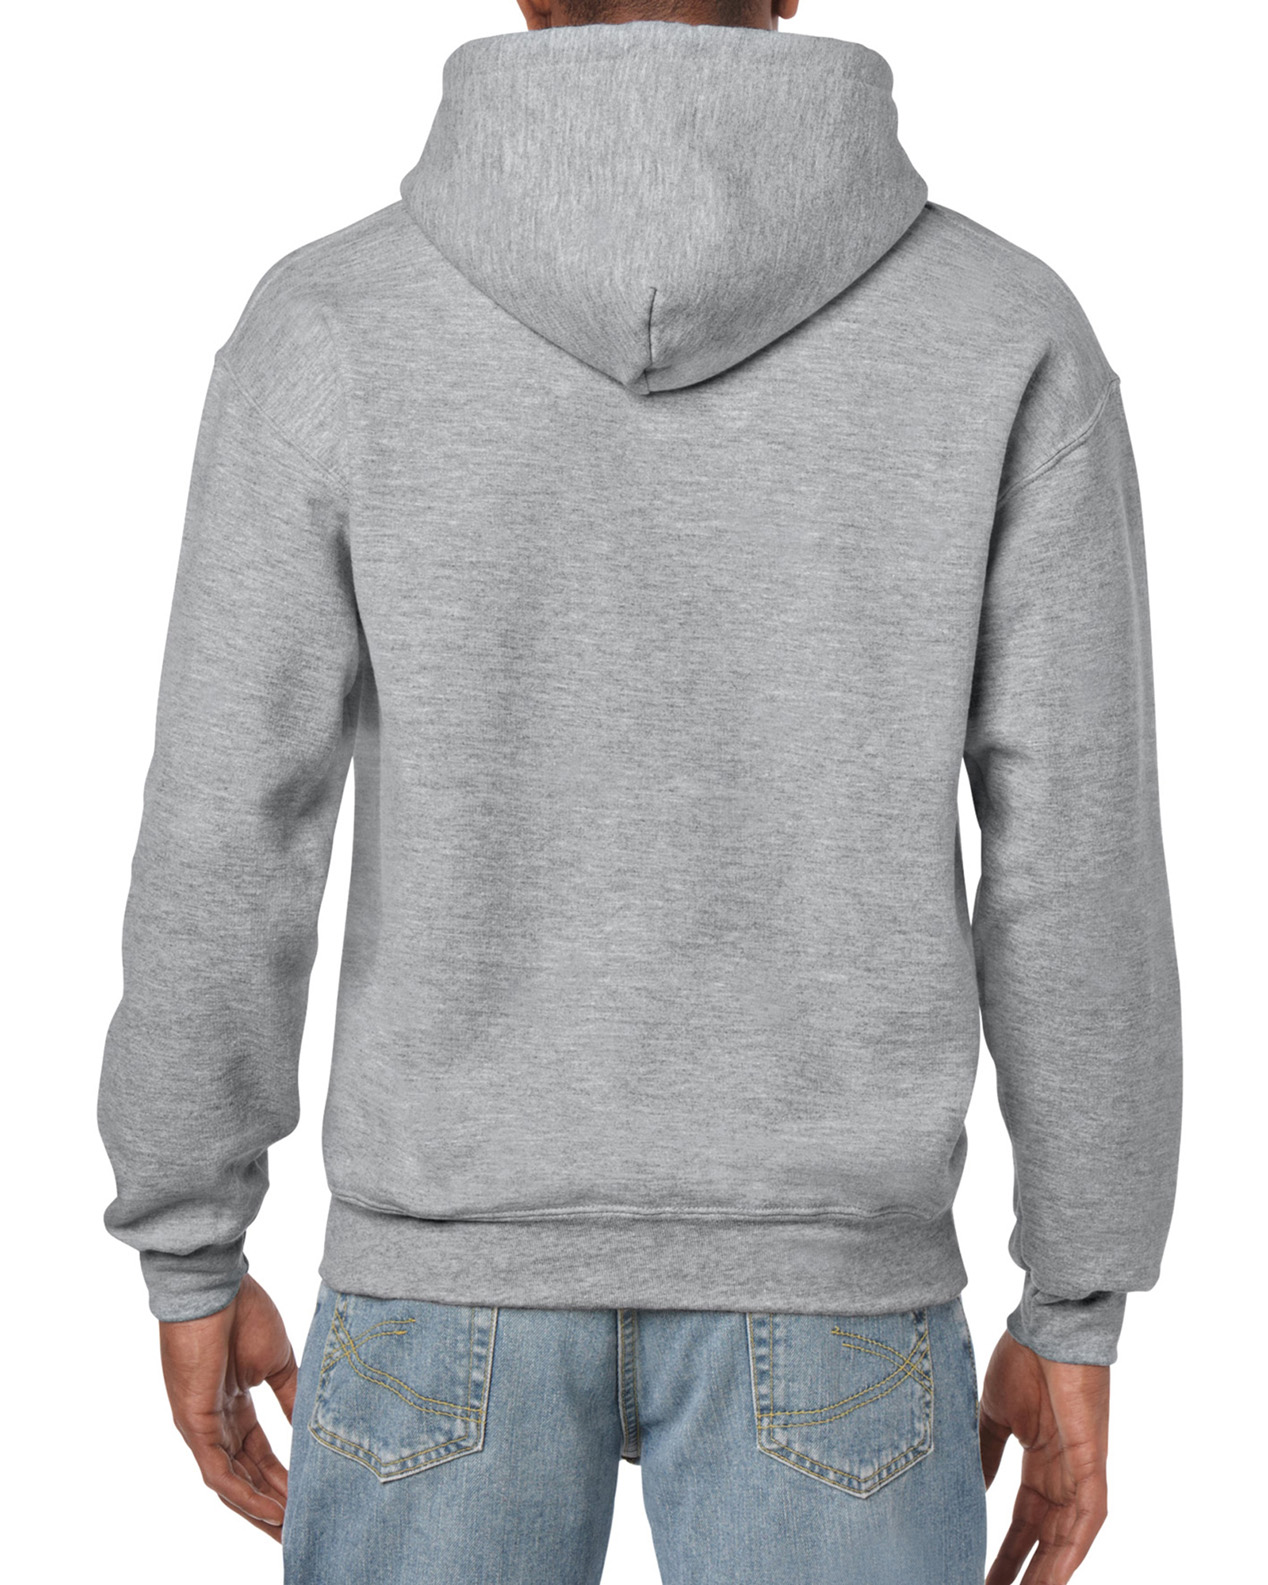 77425f4a3f69 Adult Hooded Sweatshirt. Compare